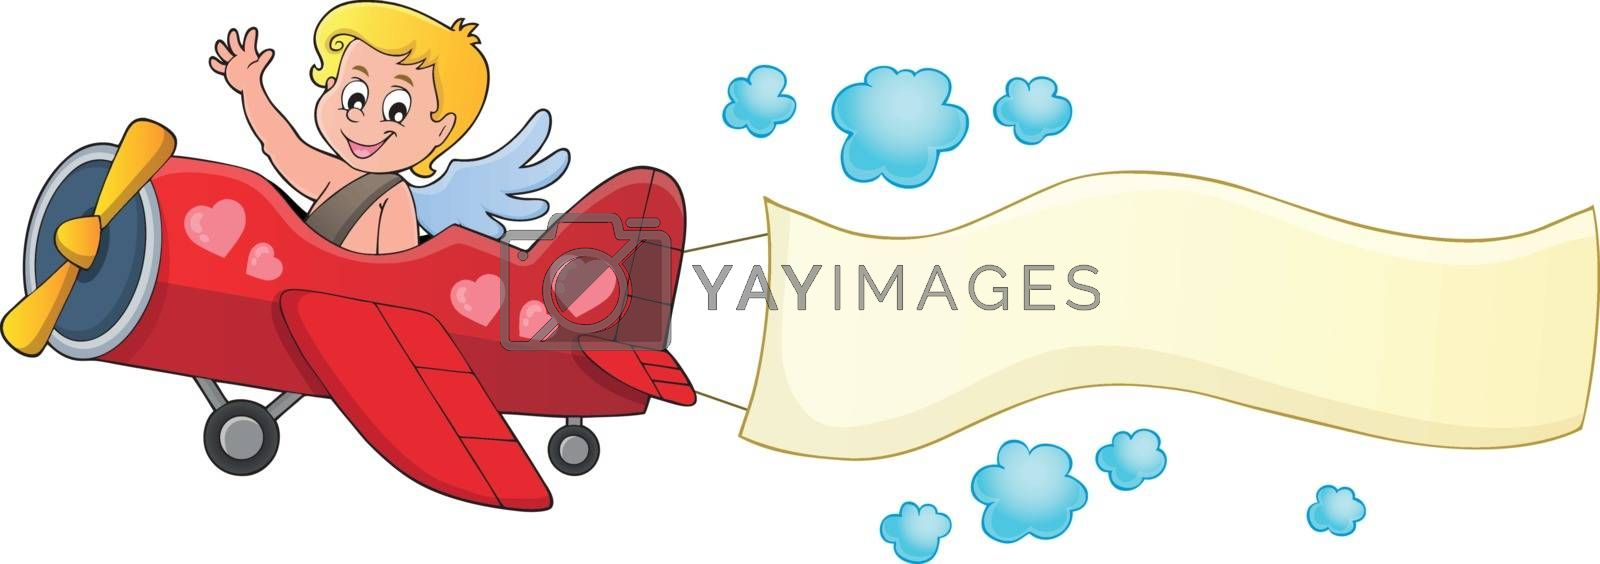 Airplane with Cupid theme image 3 - eps10 vector illustration.